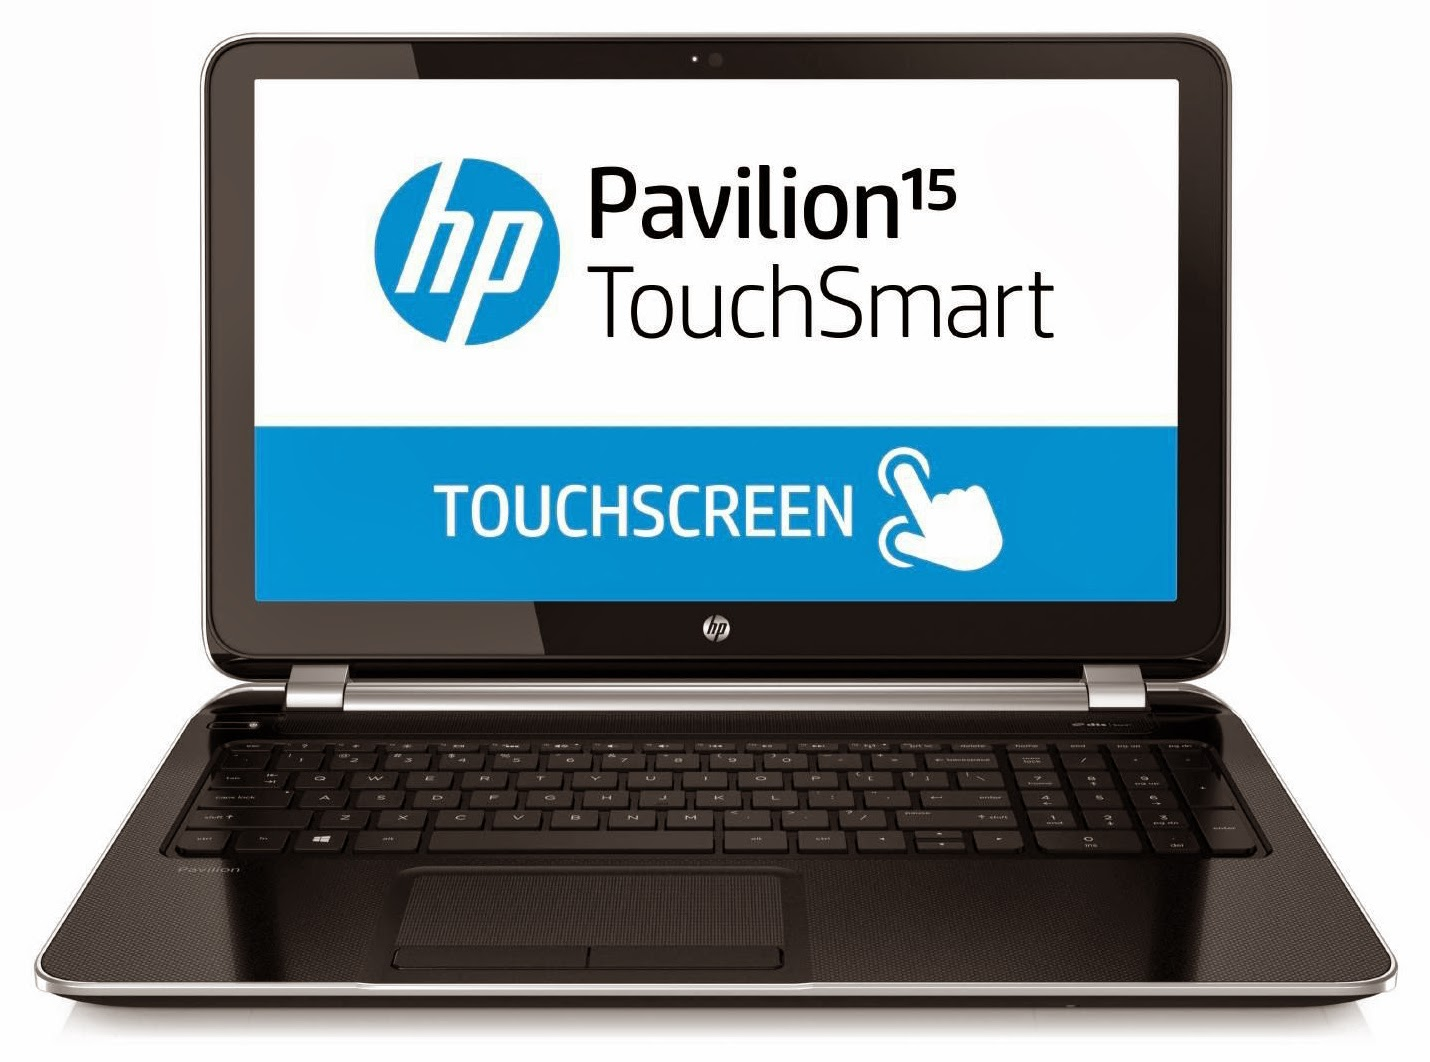 HP Pavilion TouchSmart 15-n010sg Specifications Price Reviews